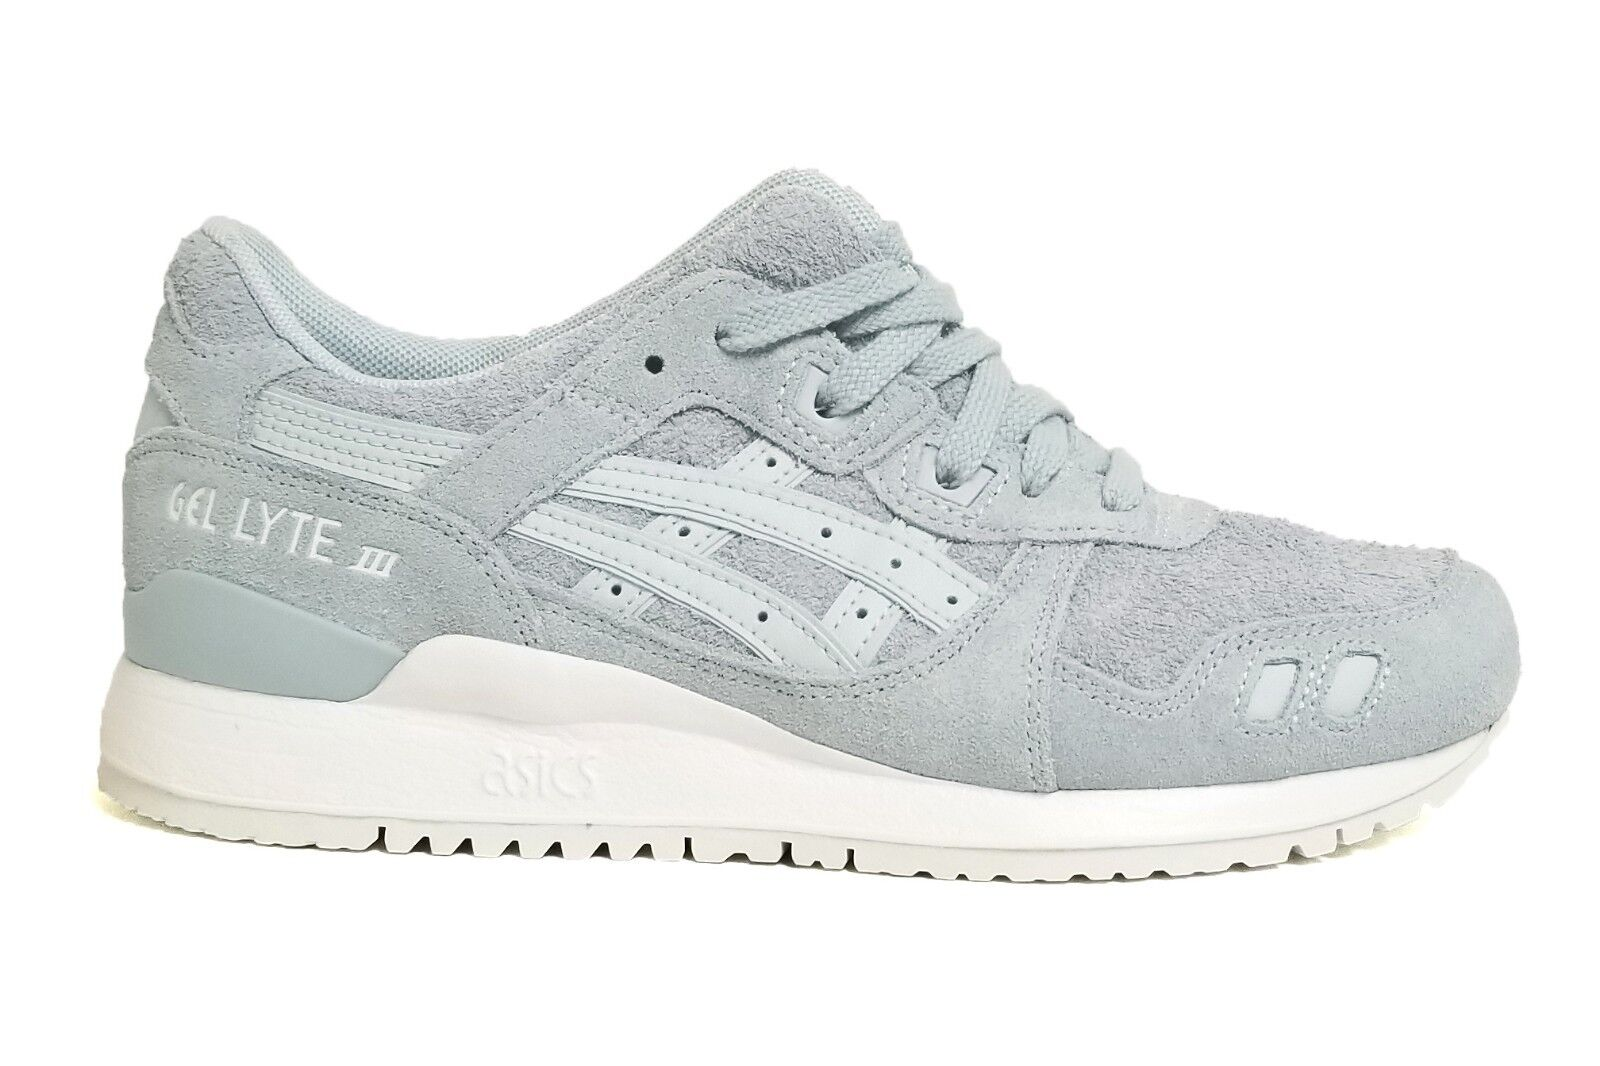 Asics Tiger Women's GEL-LYTE III PLEIN AIR shoes shoes shoes Grey H865L-4343 c fd90a8